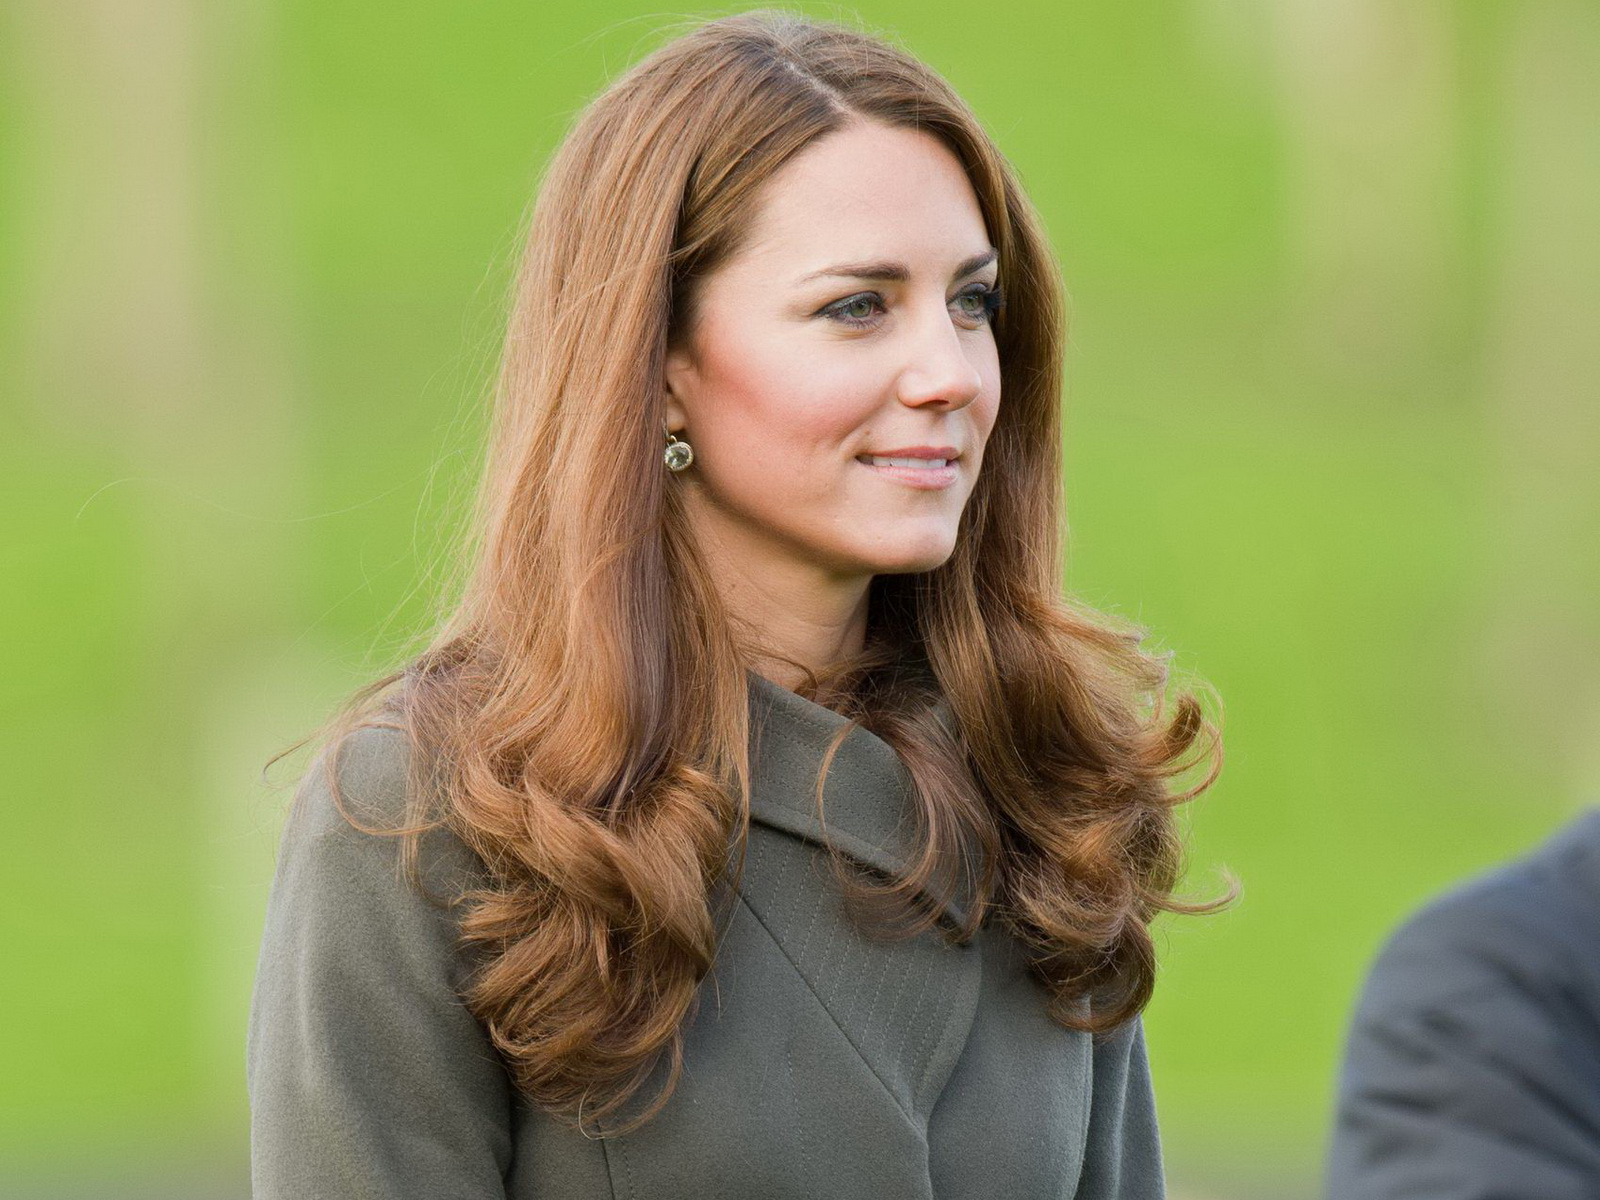 Hot Bio Celebrity Pictures Kate Middleton Wallpapers Hd 2013